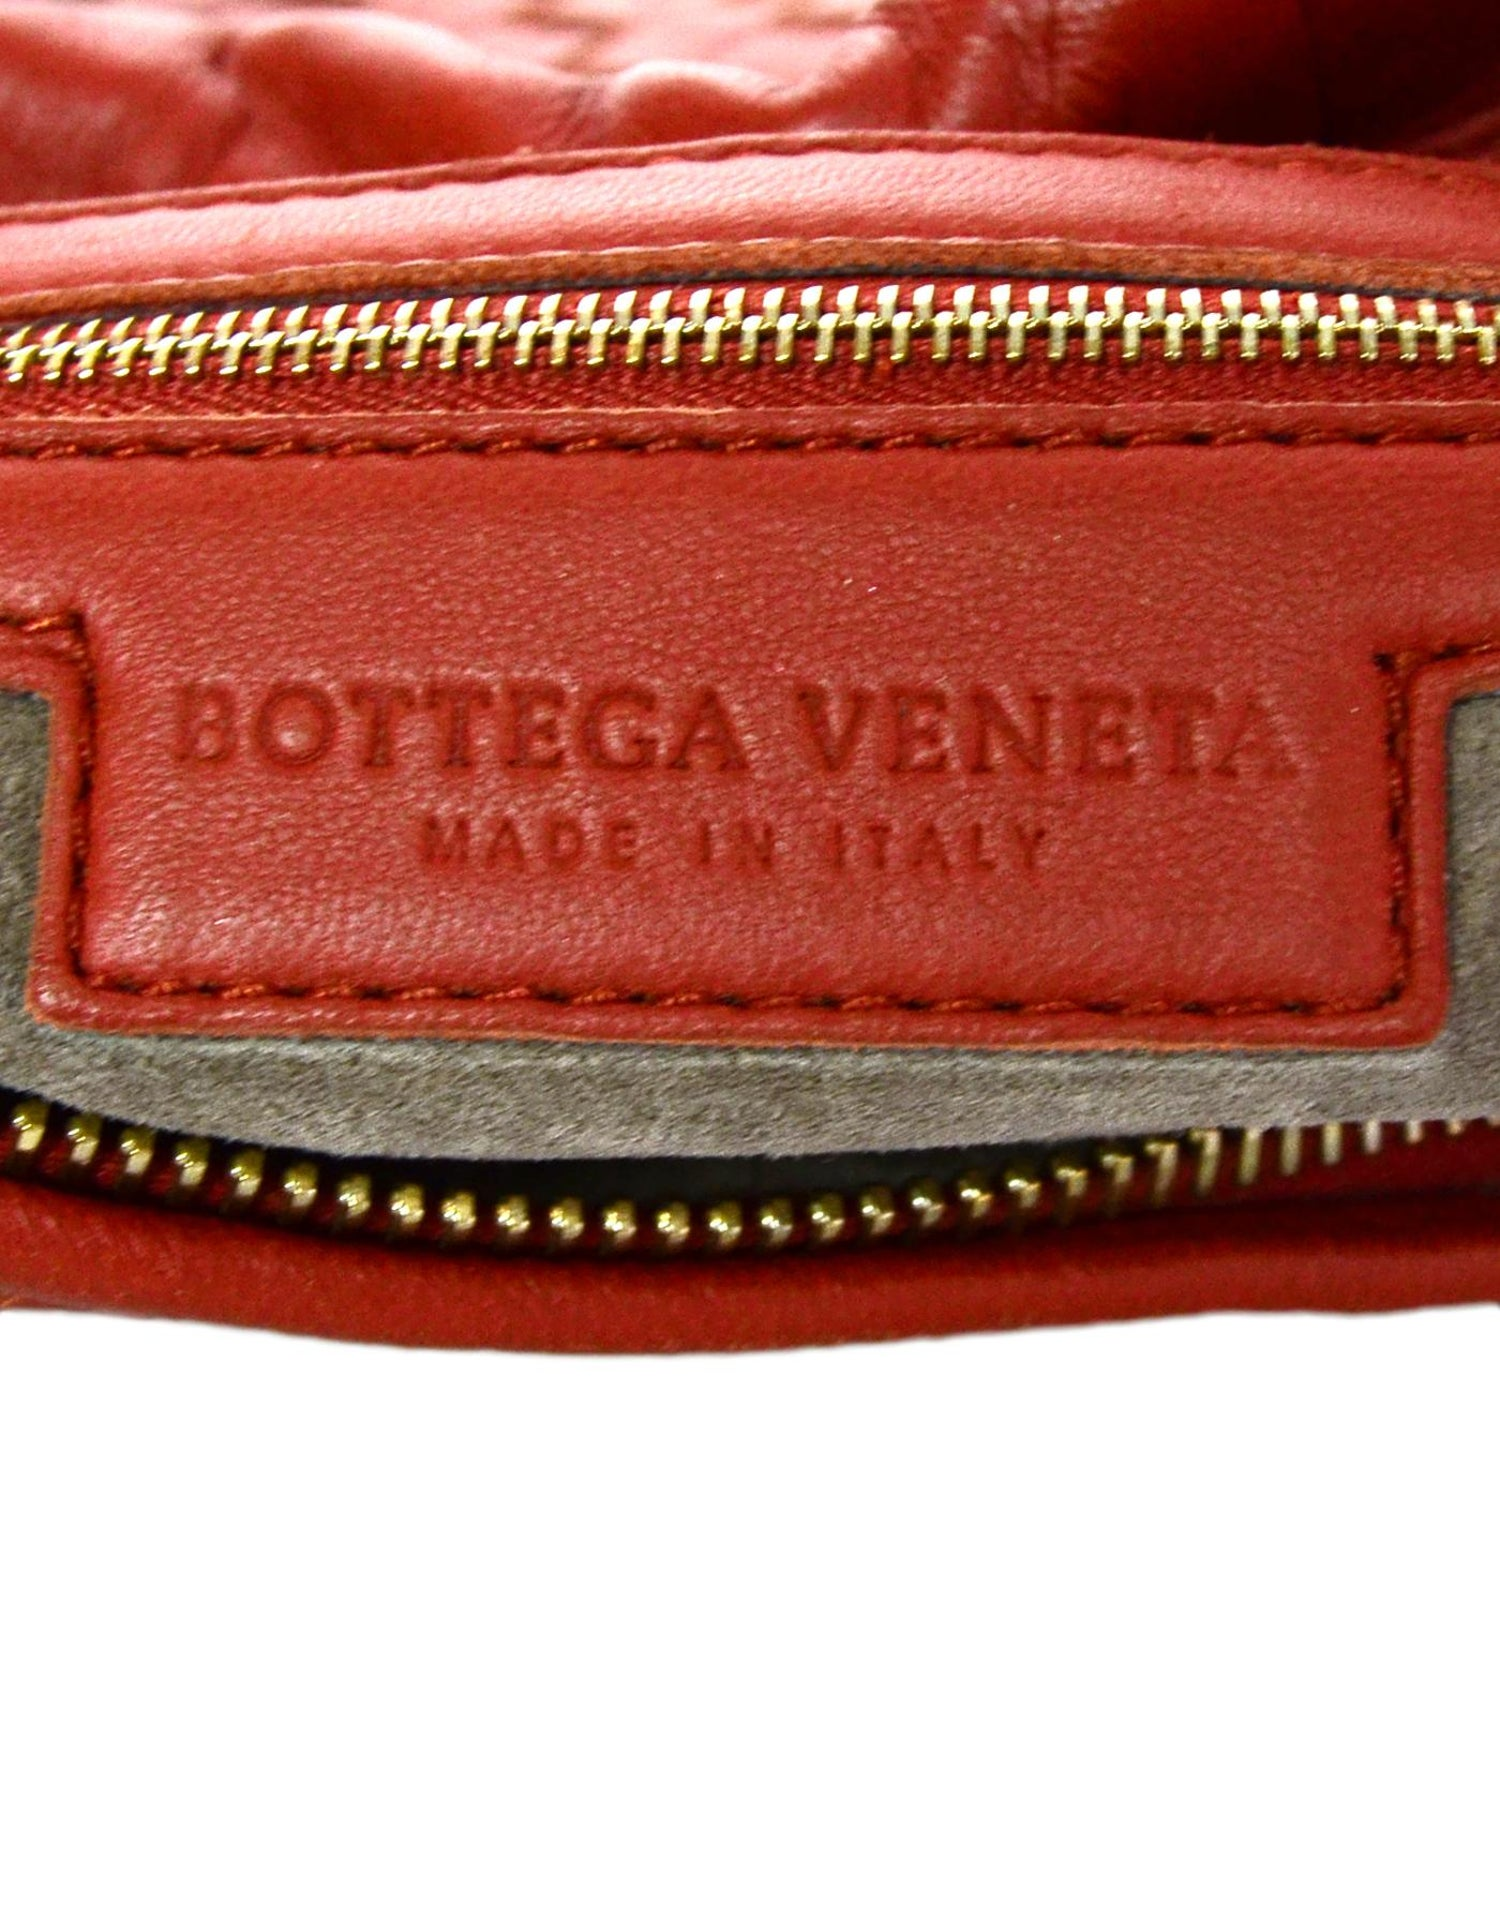 9c44400eb5 Bottega Veneta Rust Red Woven Leather Nappa Intrecciato Medium Veneta Hobo  Bag For Sale at 1stdibs